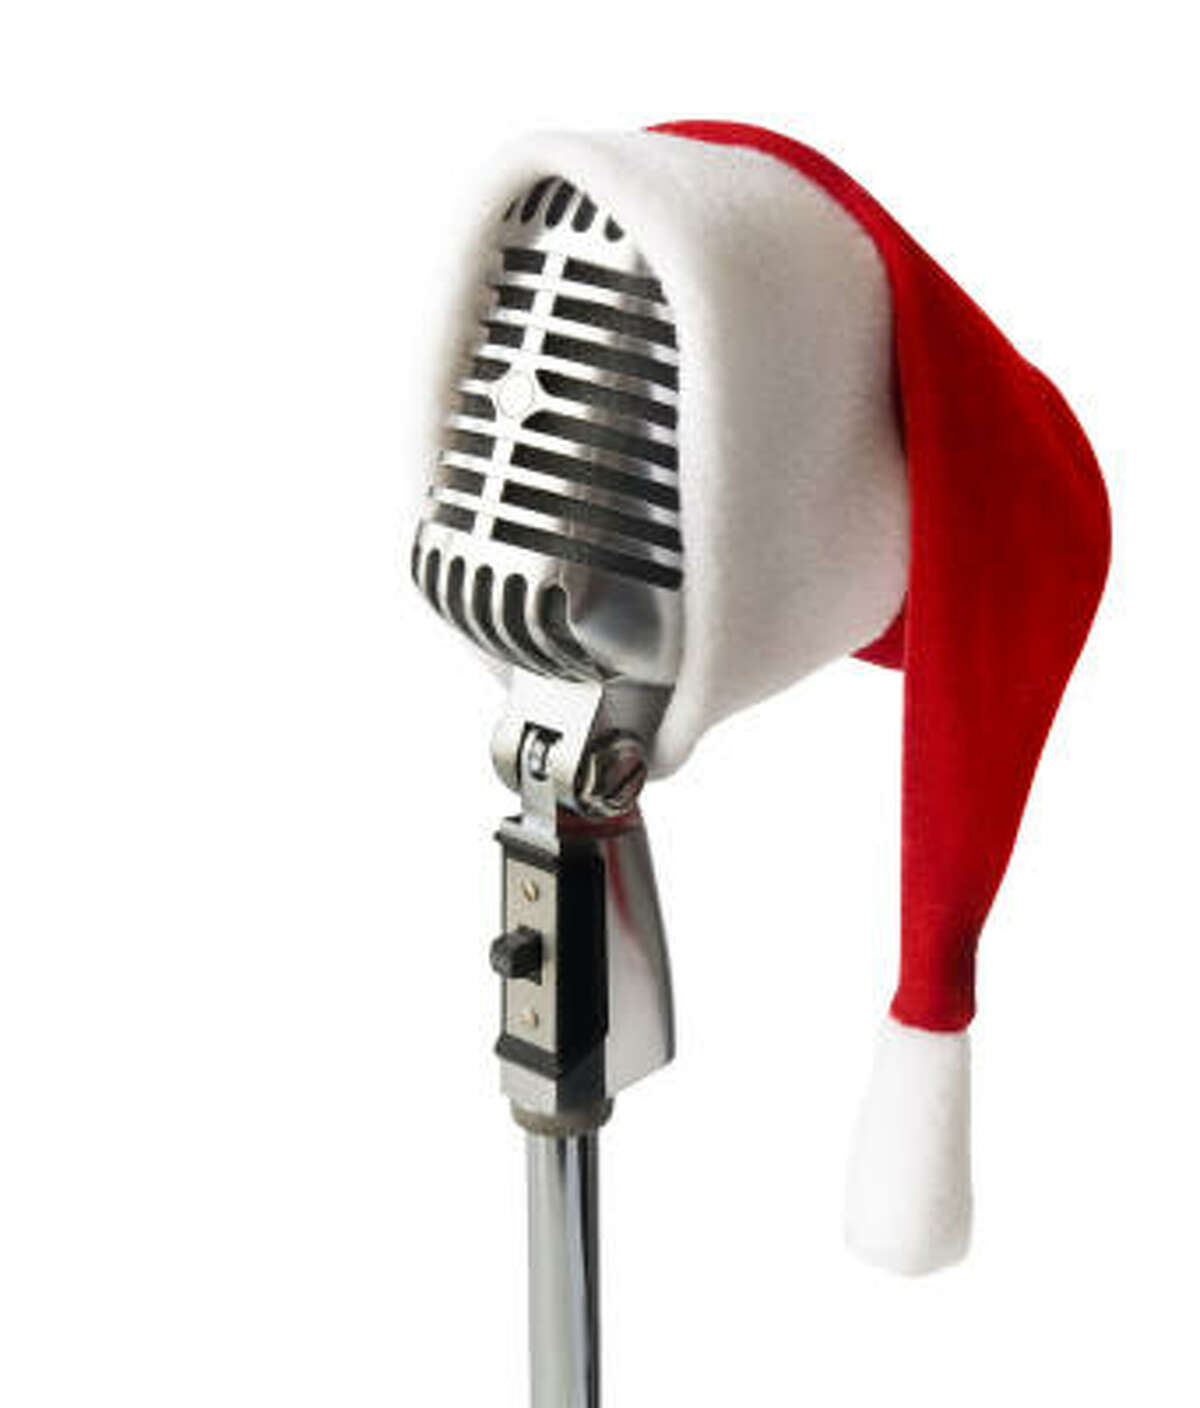 99.1 Christmas Music 2020 24 hour Christmas music begins on Sunny 99.1 on Friday at 3 p.m.